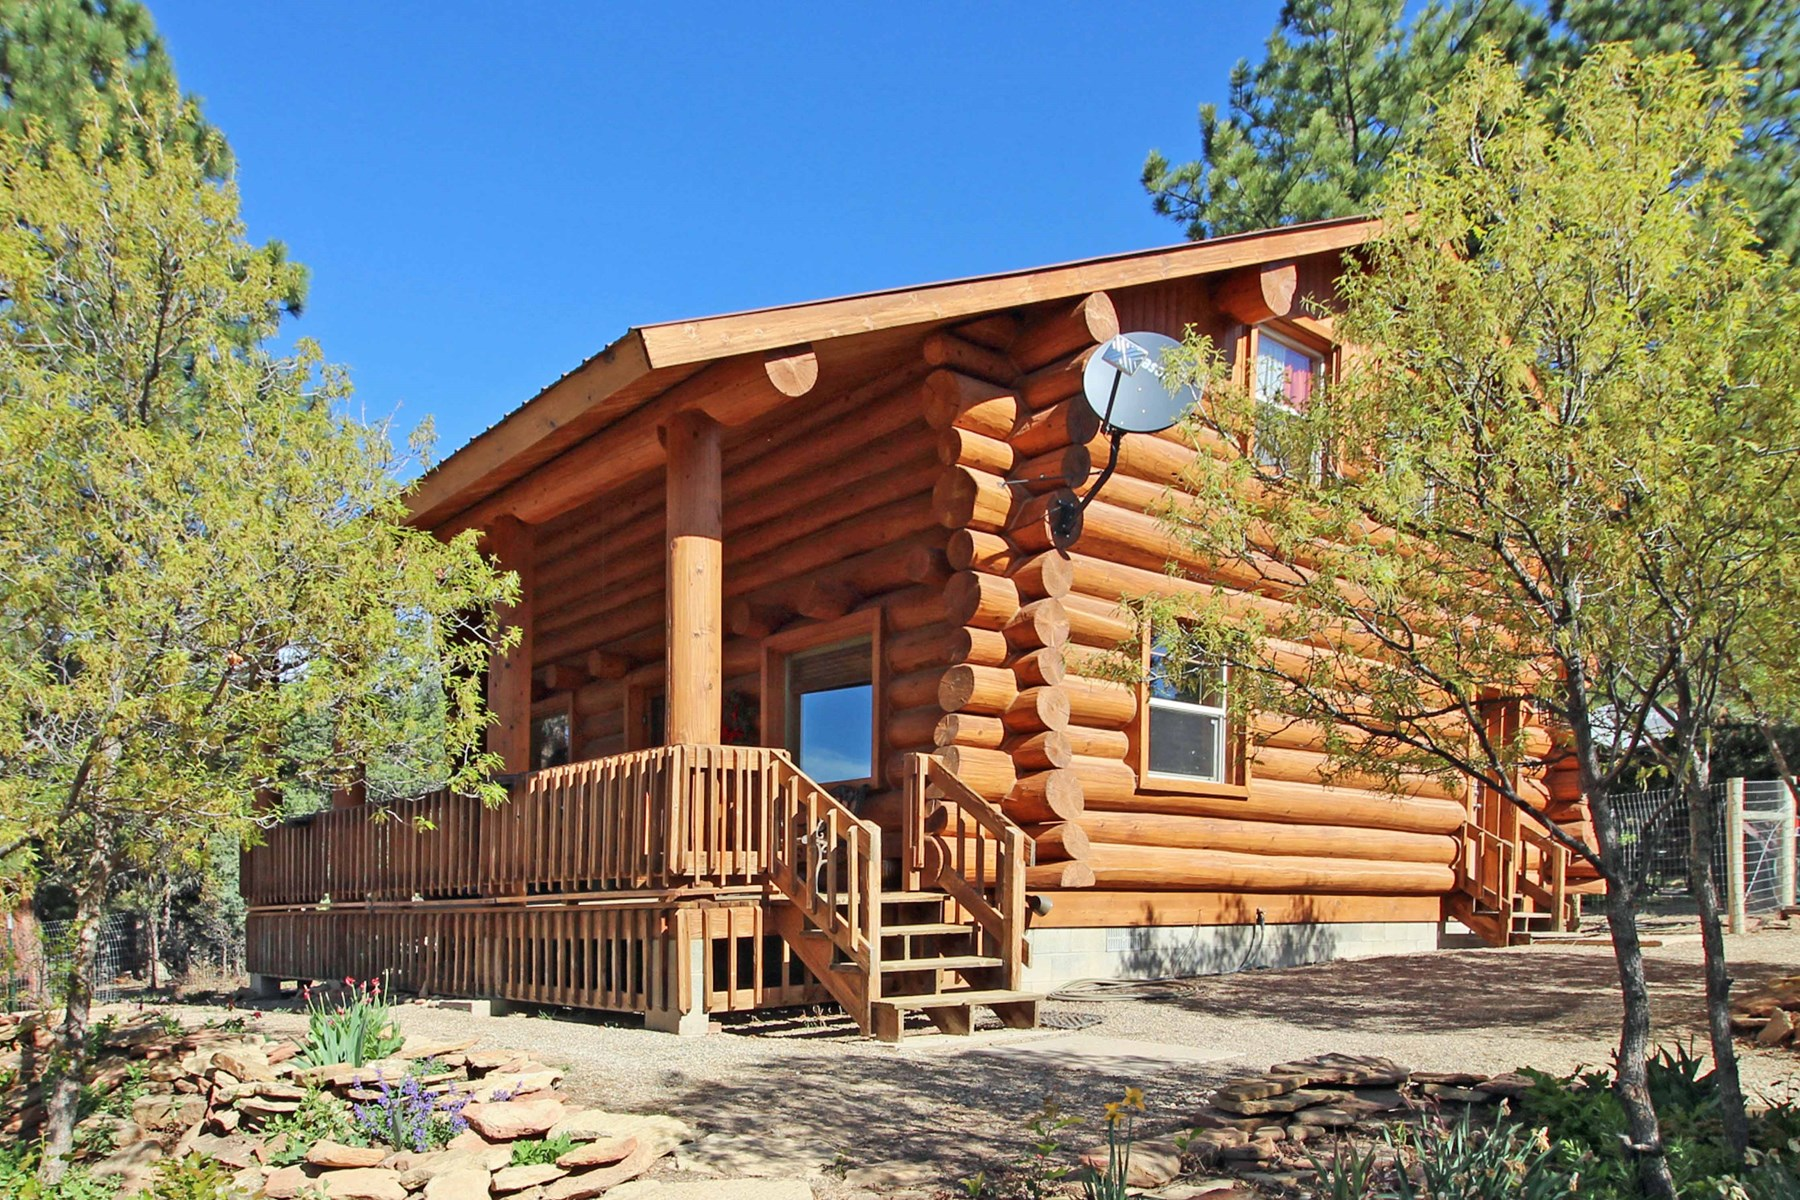 Equine Property on 6 acres with log home in Mancos, Colorado